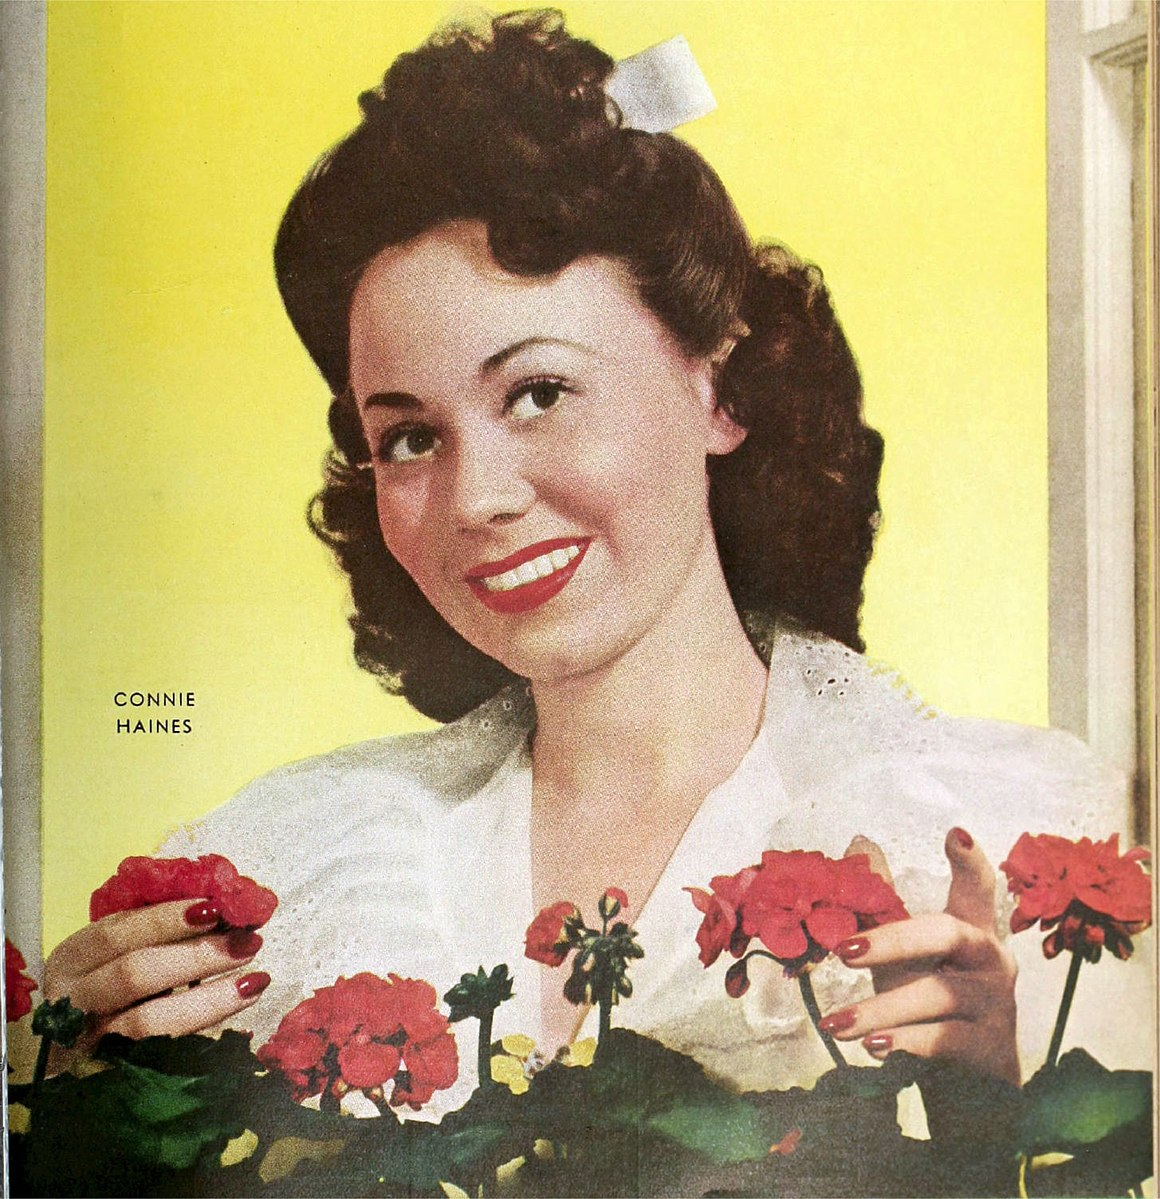 Connie Haines, circa 1943